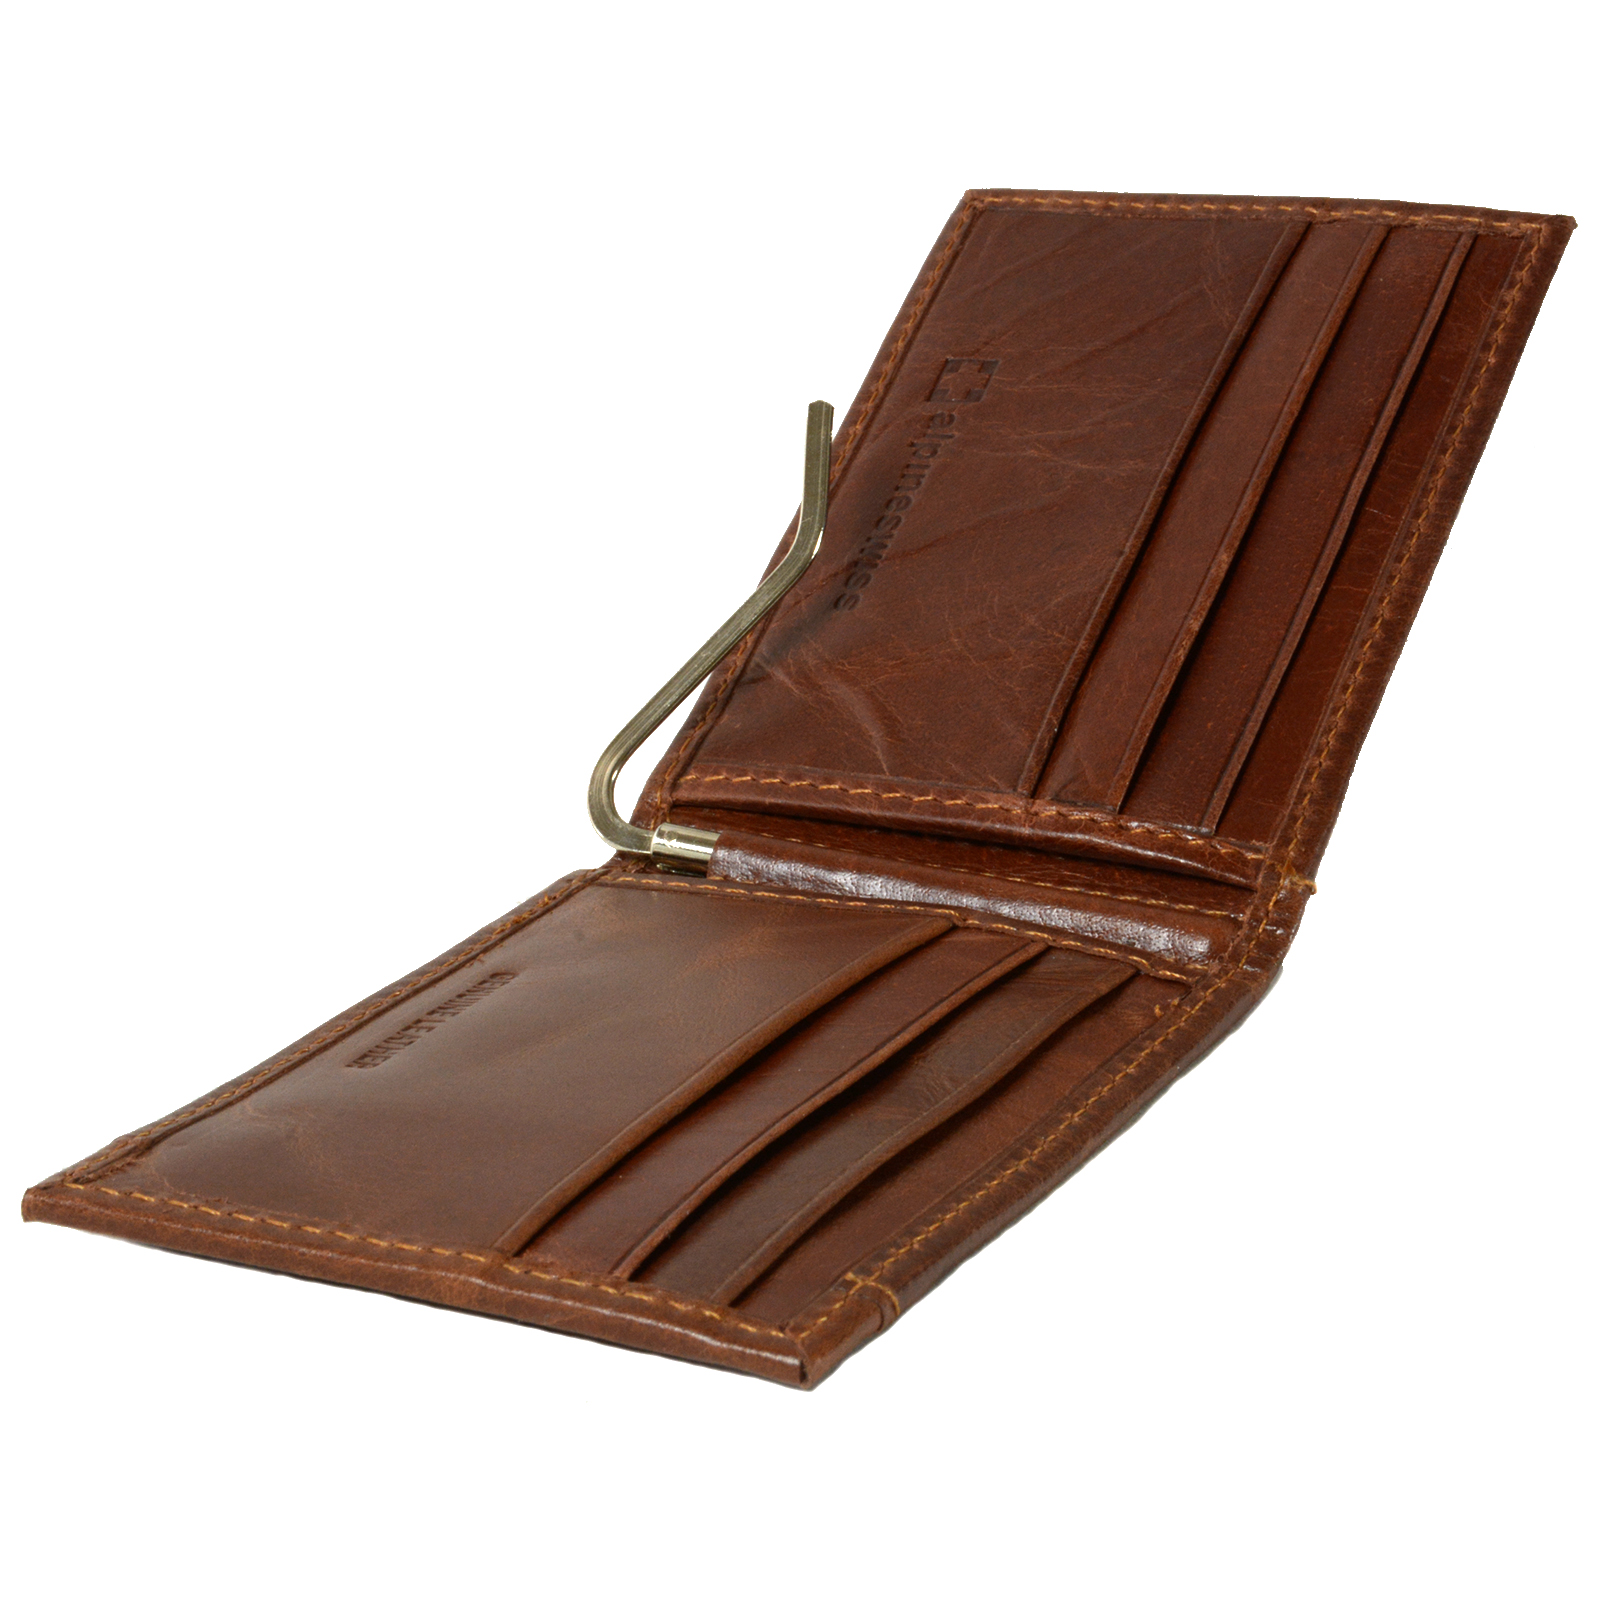 Alpine-Swiss-Mens-Bifold-Money-Clip-Spring-Loaded-Leather-ID-Front-Pocket-Wallet thumbnail 30